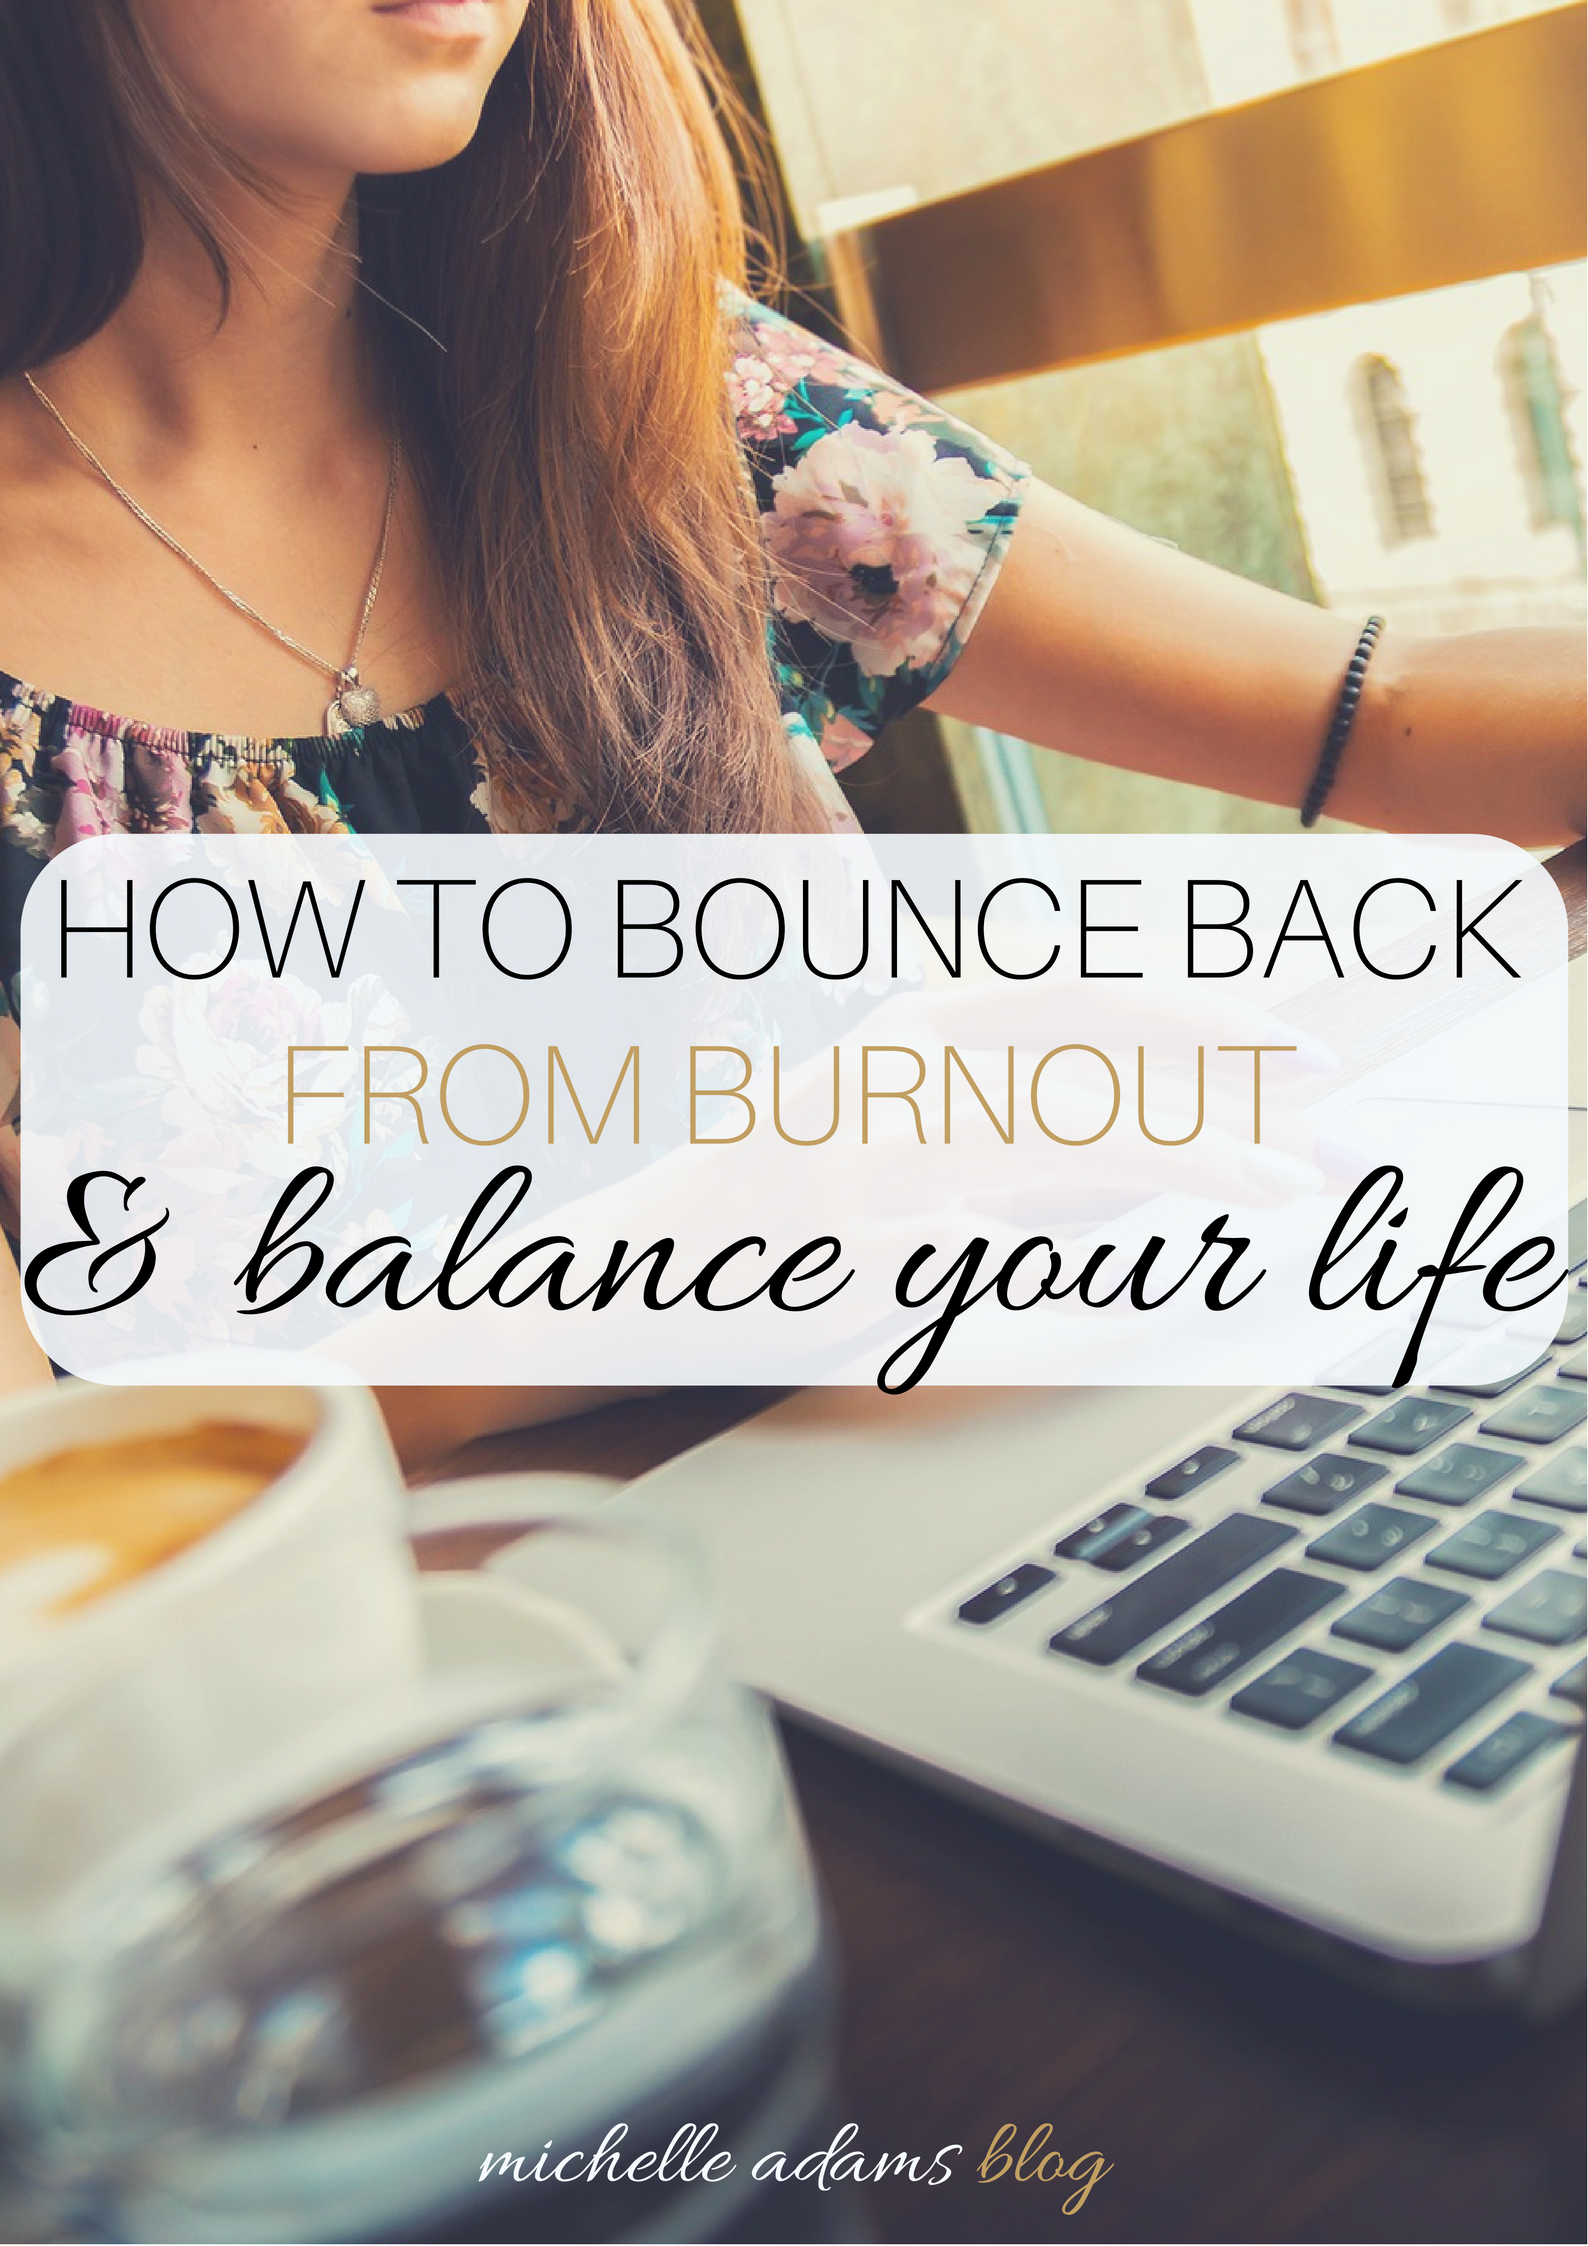 Burnout: What Is Burnout? & How To Bounce Back!